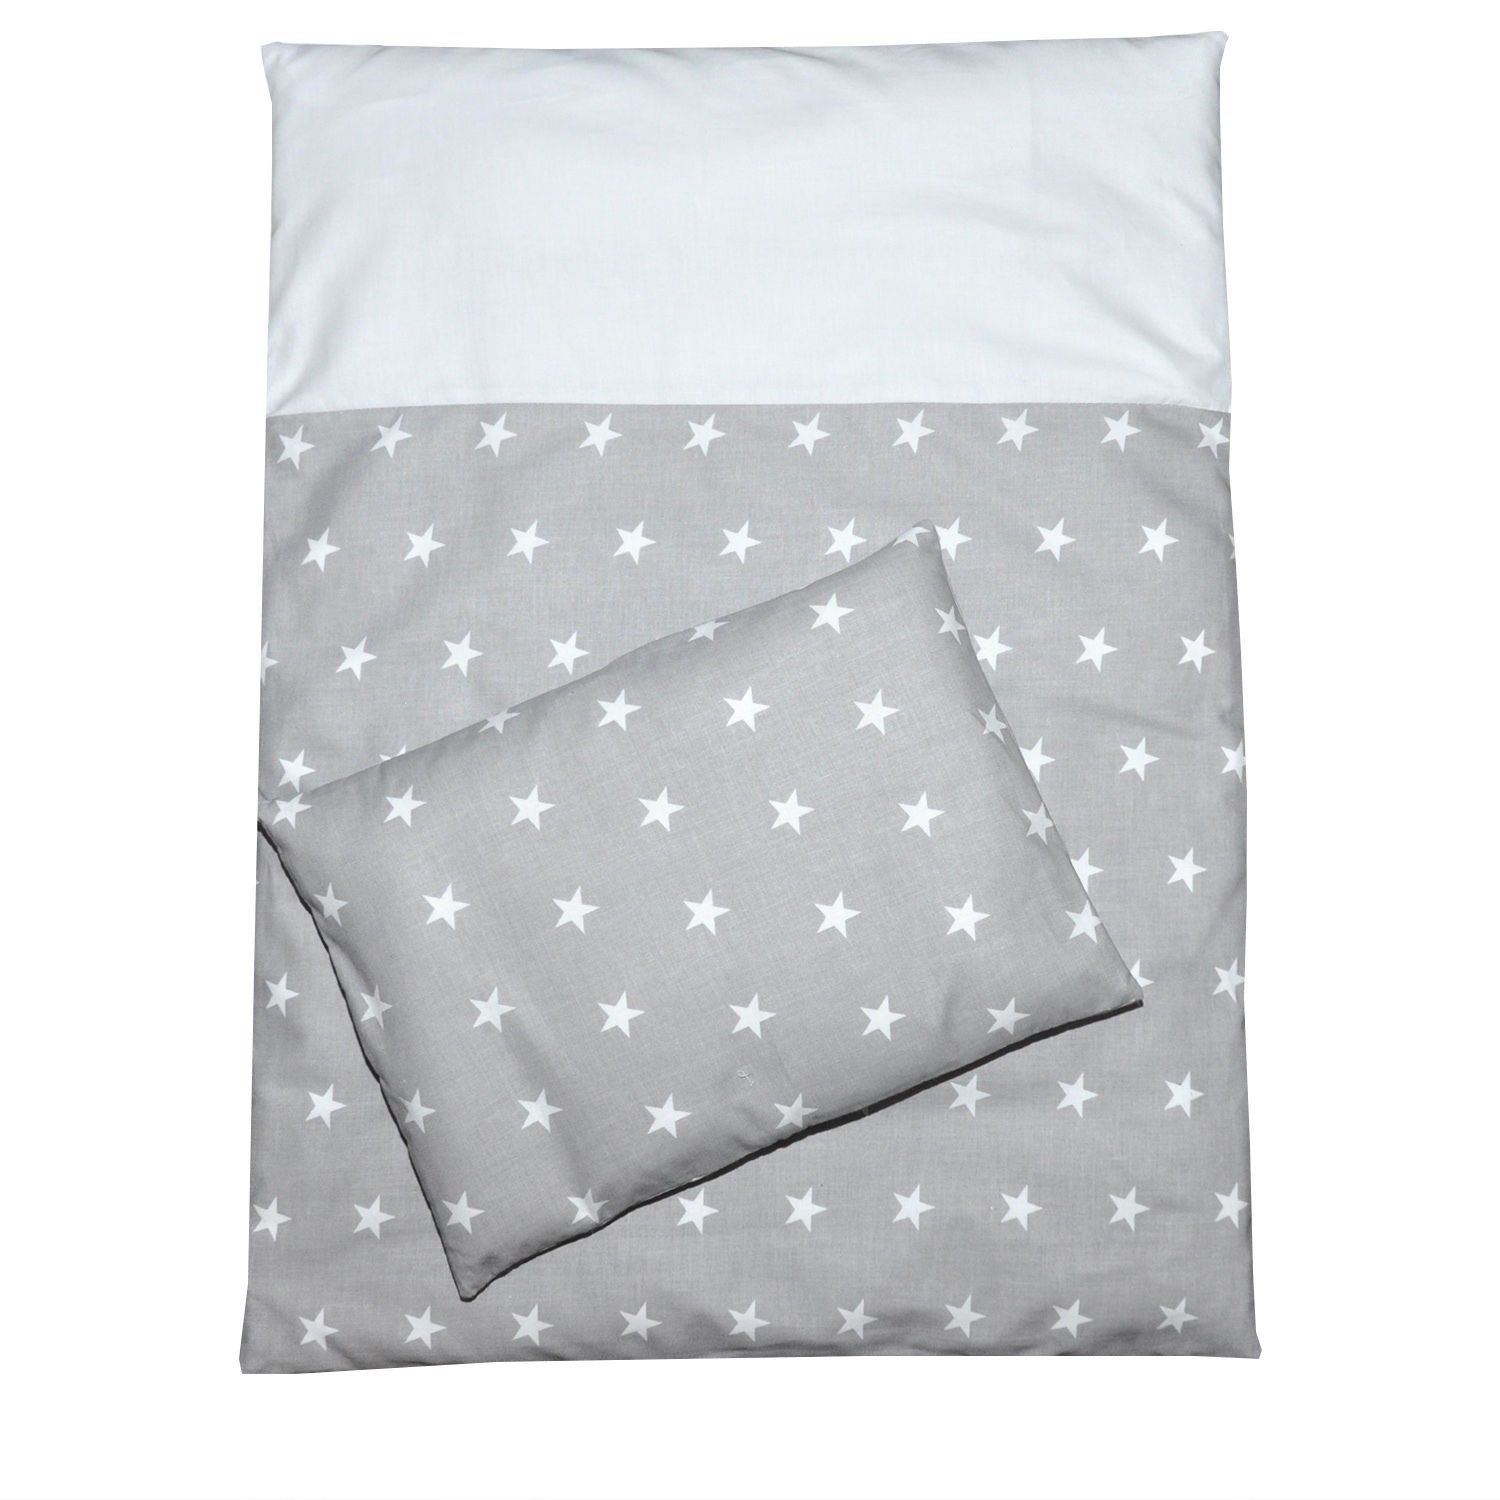 Pcs peter pan bedding set duvet cover fitted sheet pillow case worl - Baby Bedding Set Pillowcase Duvet Cover 2pc To Fit Cot Cot Bed 2 Sizes